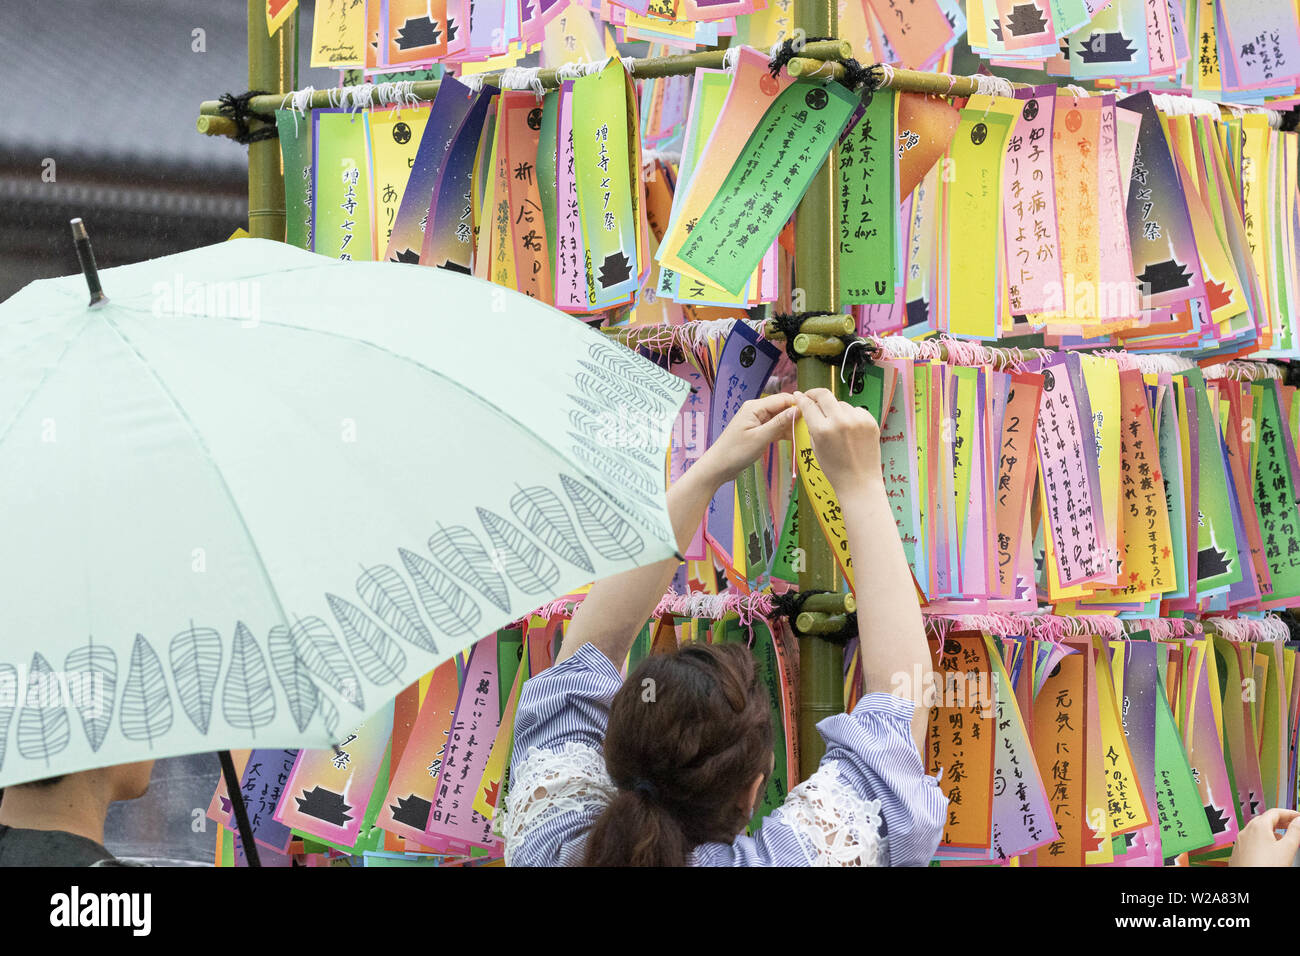 Tokyo, Japan. 7th July, 2019. Visitors hang their wishes on bamboo as part of the Tanabata festival at Zojoji Temple. Every year, people write their wishes on colorful papers (Tanzaku) to hang it on bamboo branches as a tradition of the Tanabata Festival. The annual celebration commemorates the legend of two lovers separated by the Milky Way who only meet once a year on the seventh day of the seventh month. The festival has been held since the Edo era. Credit: Rodrigo Reyes Marin/ZUMA Wire/Alamy Live News - Stock Image